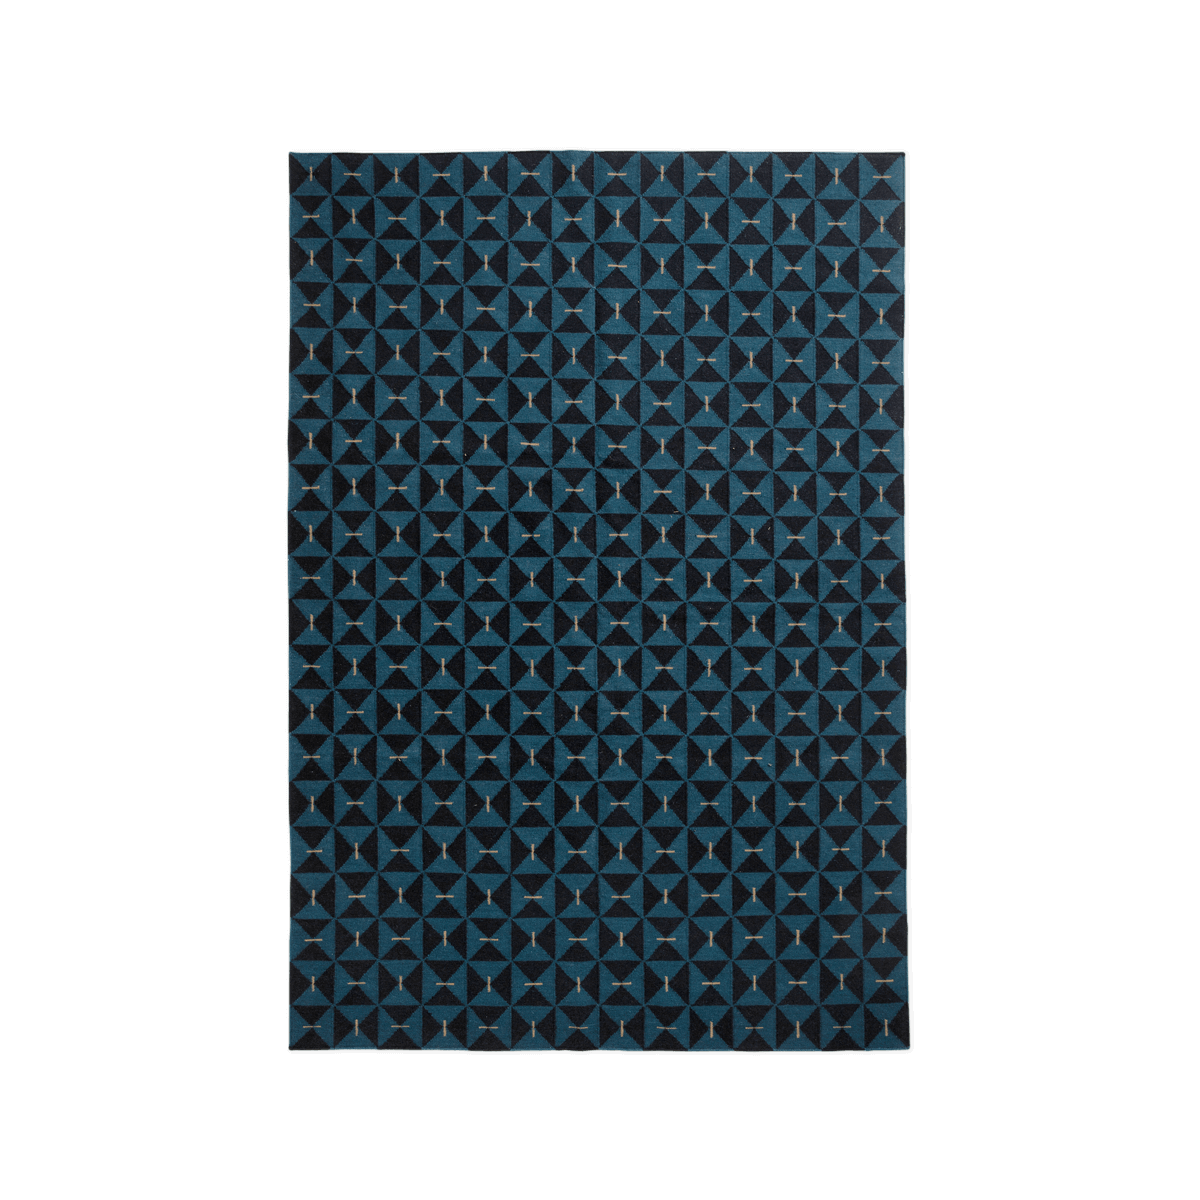 Product image of the flatweave rug Mosaik in the color Teal. The rug has a graphic and geometrical pattern across it.